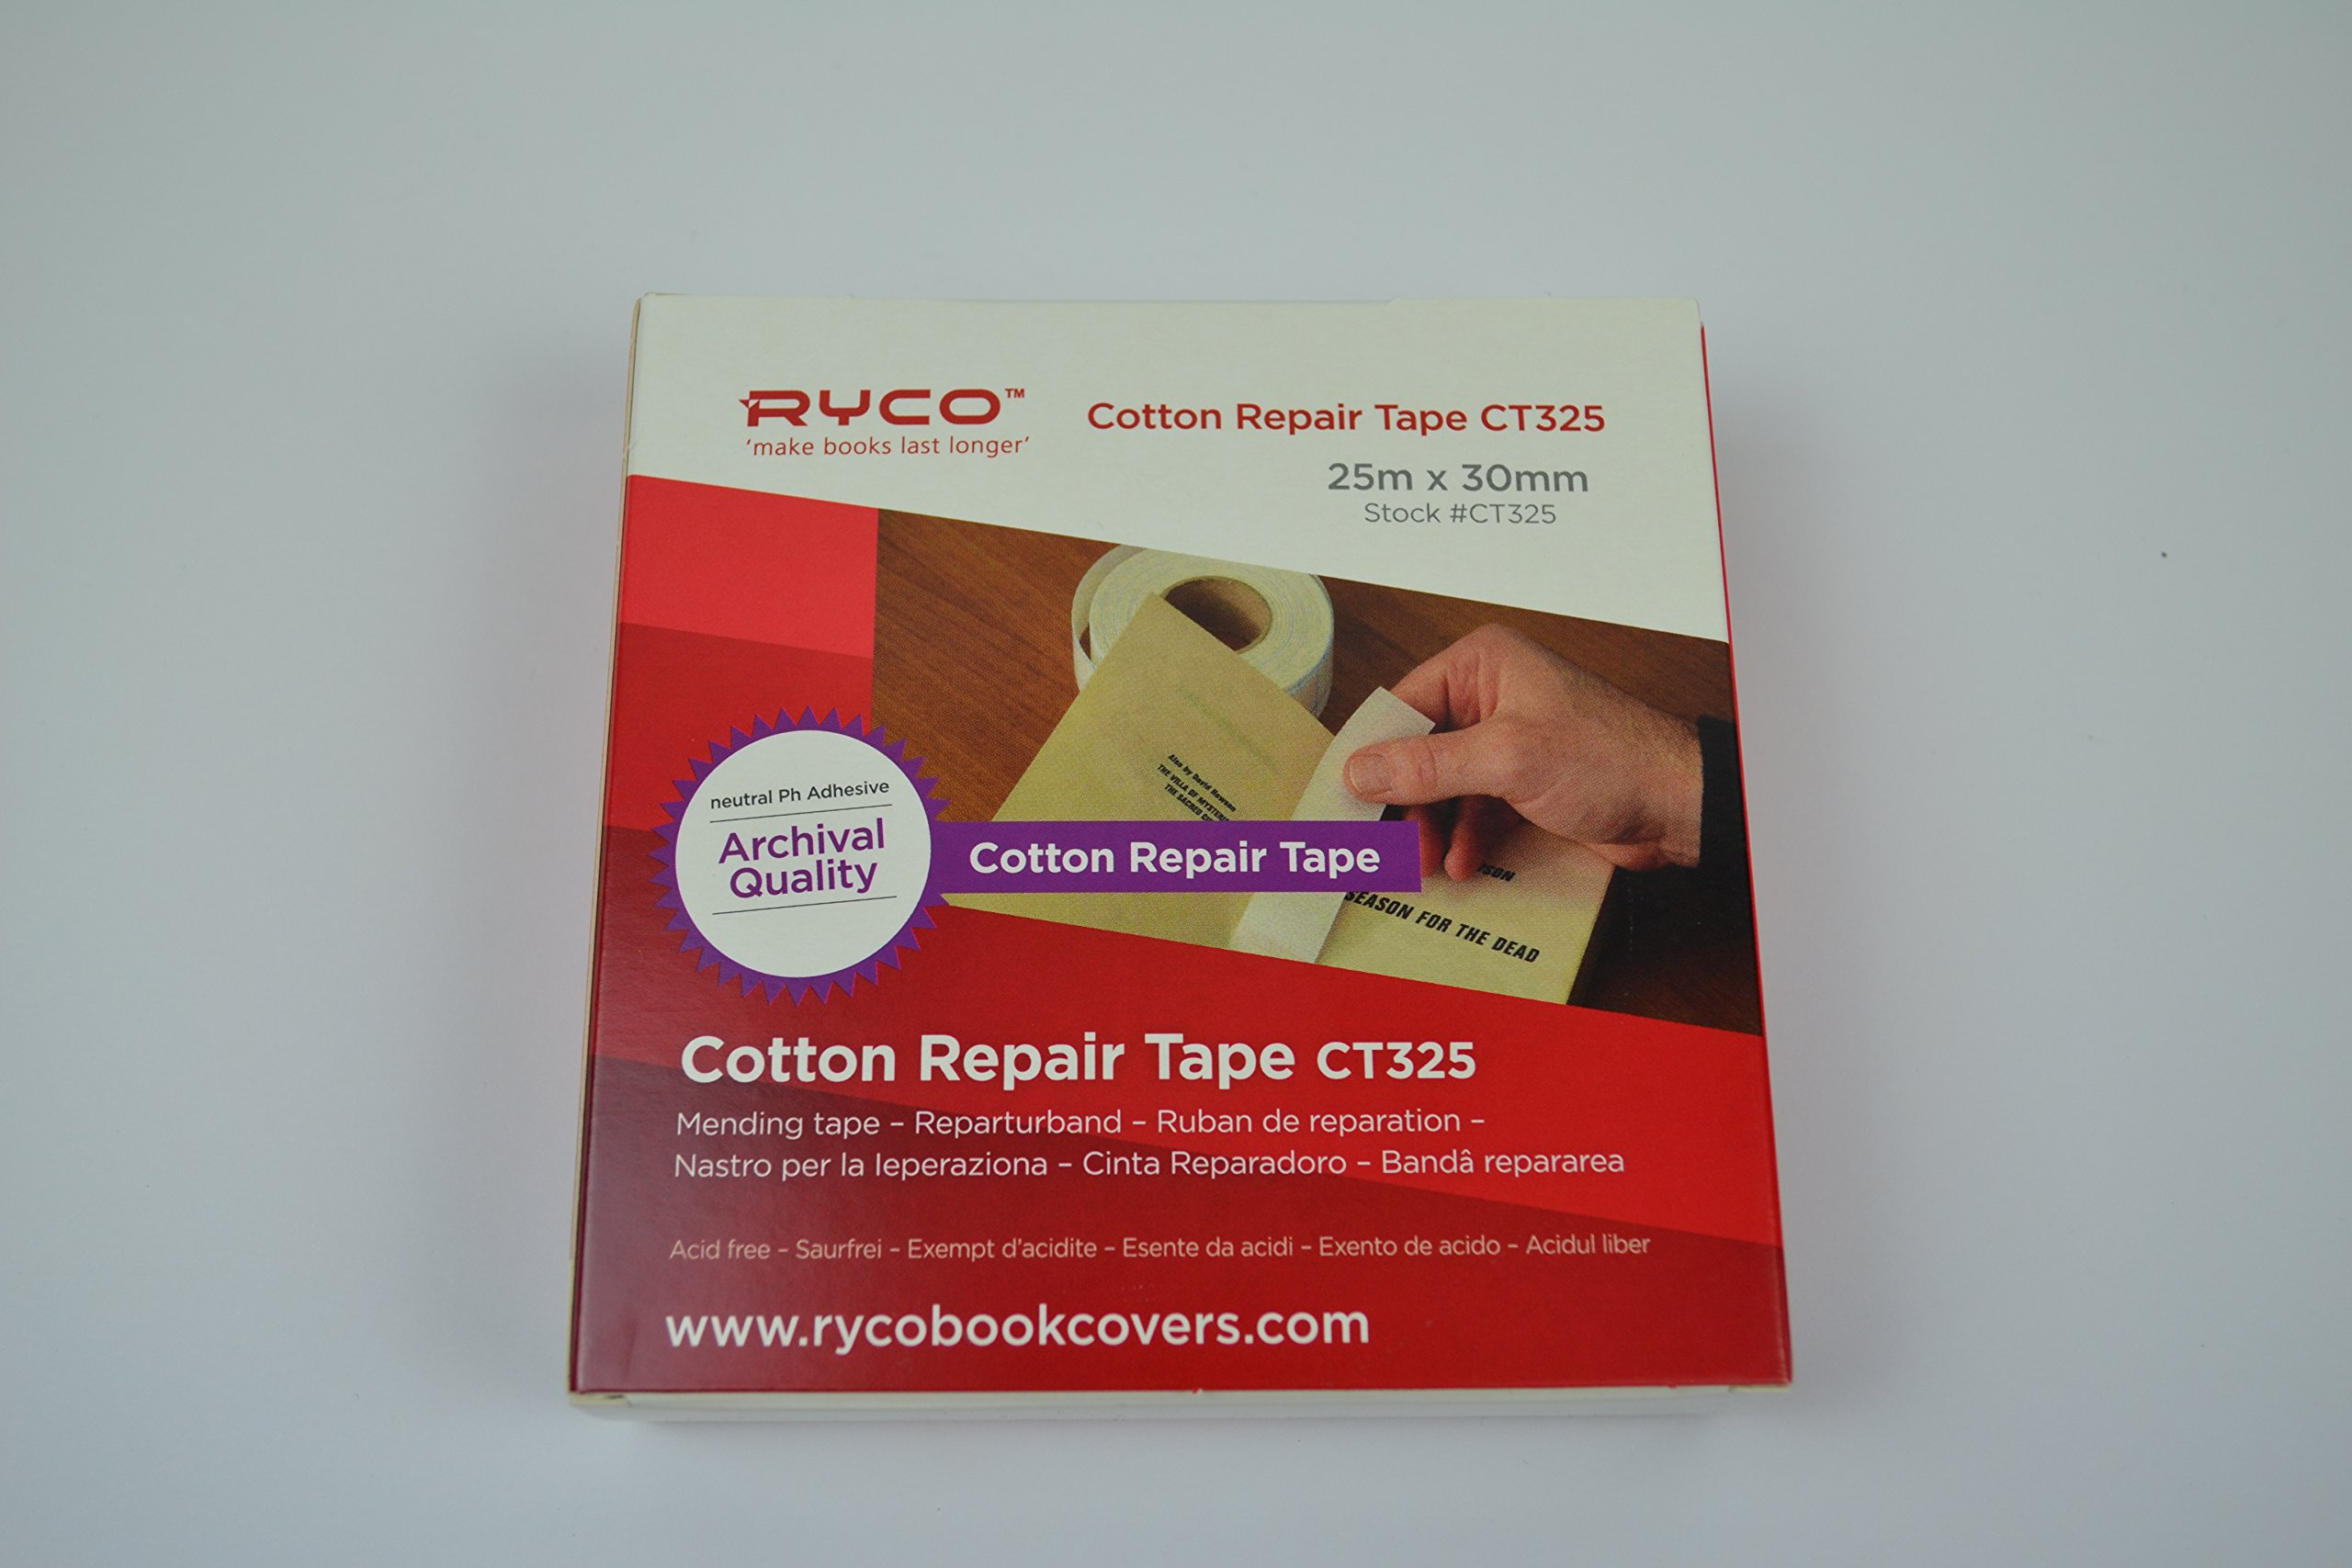 Ryco Cotton Book Repair Tape - White Cotton Tape 1.18'' x 27 Yards (1 Roll)